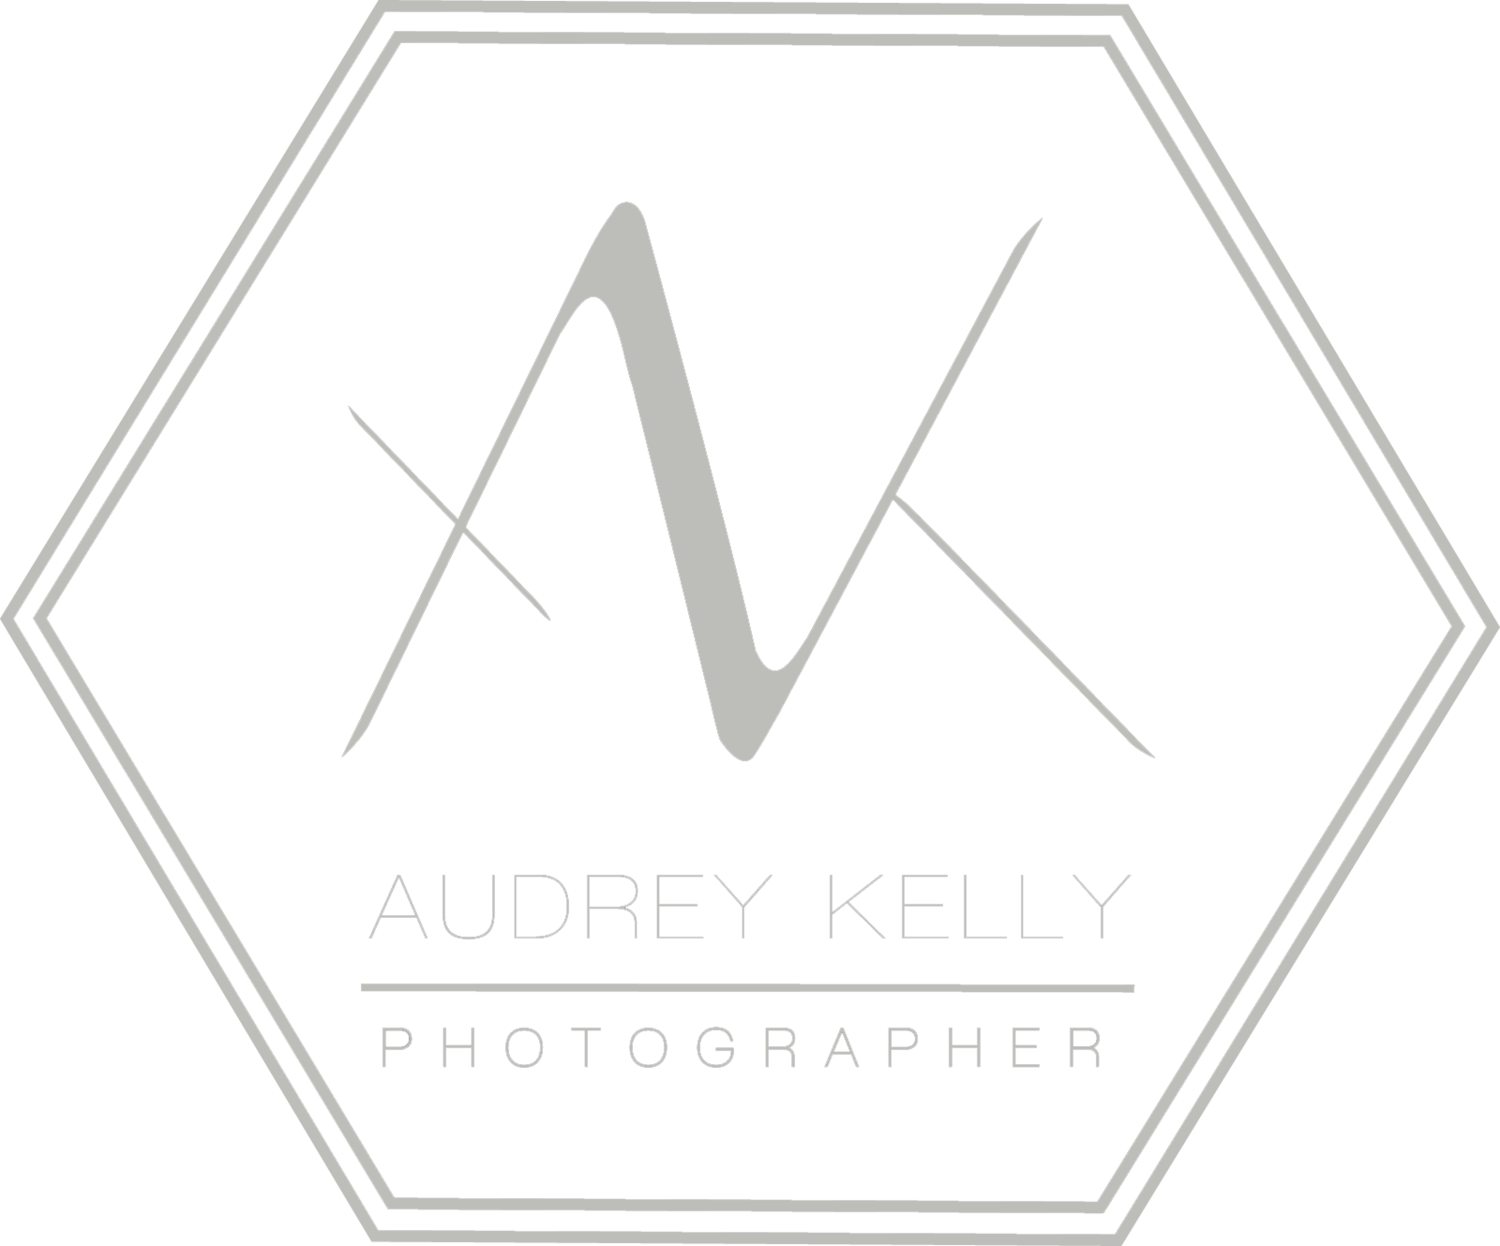 Audrey Kelly Photographer